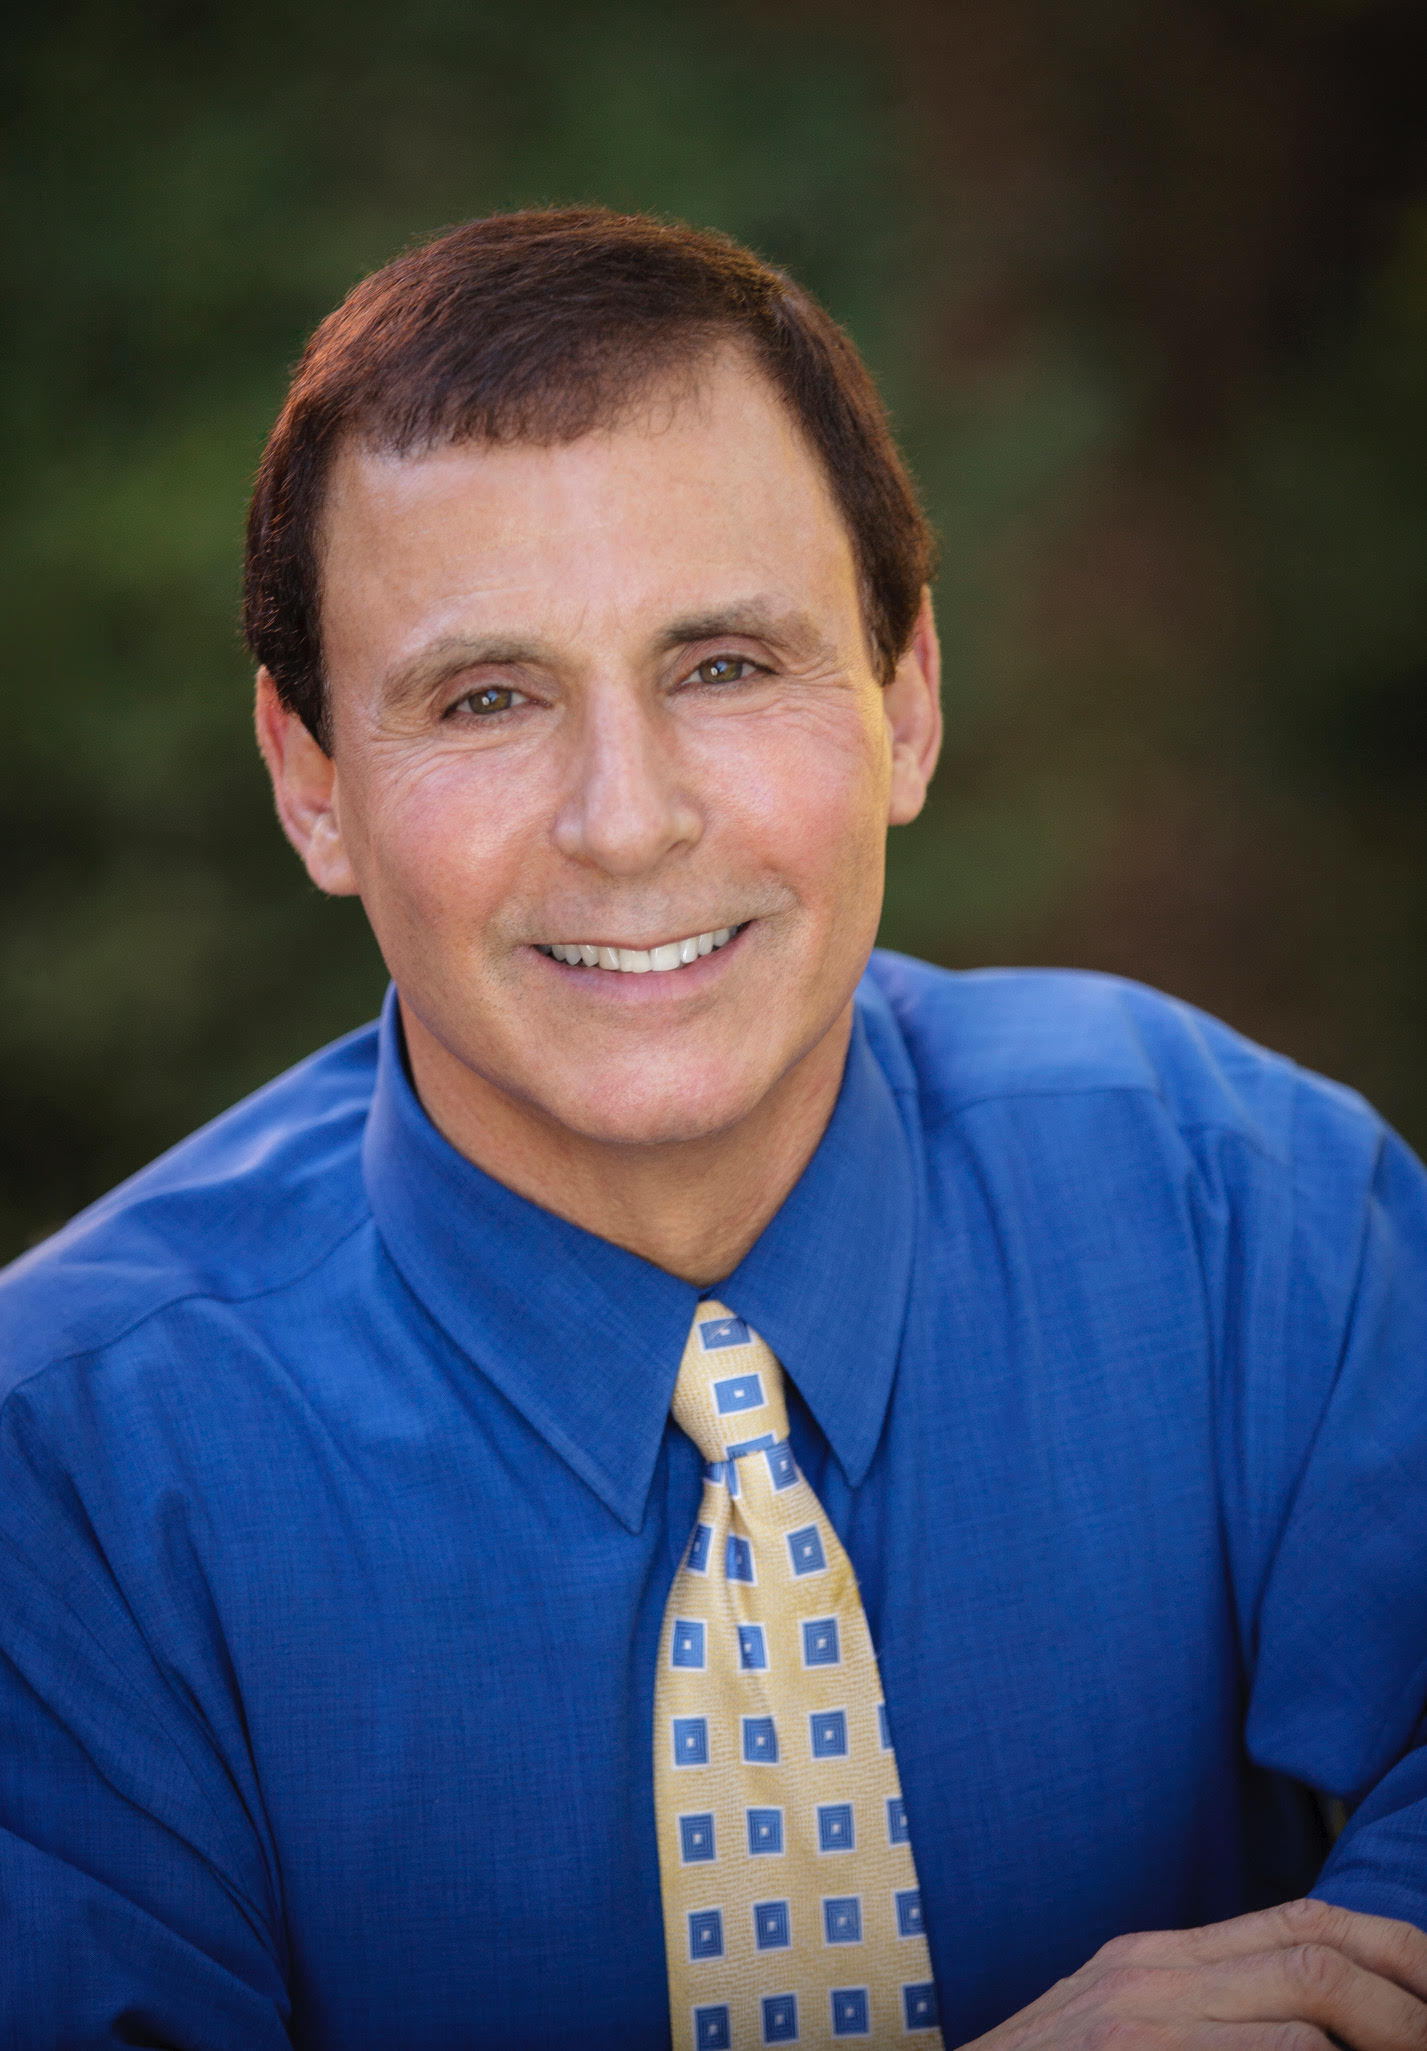 Joe Cirulli chats with Paul Spiegelman on the Growing with Purpose podcast